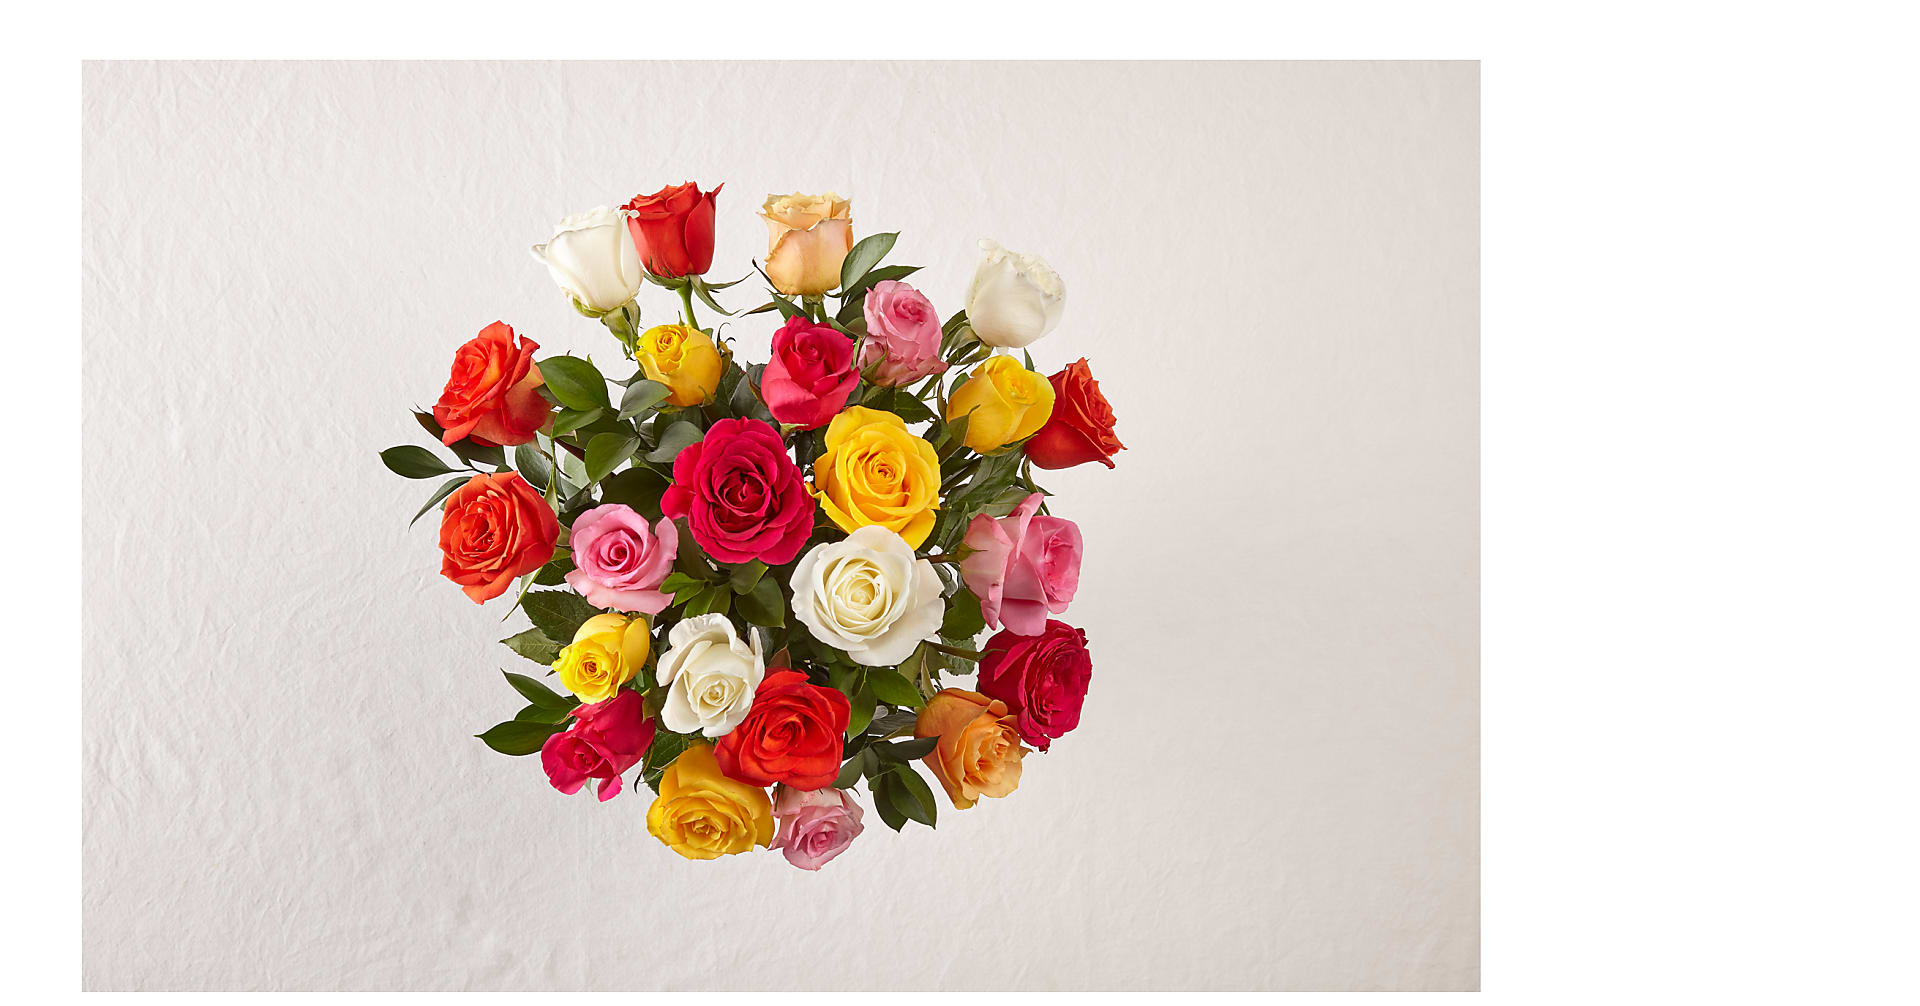 Mixed Roses with Vase - Image 5 Of 6